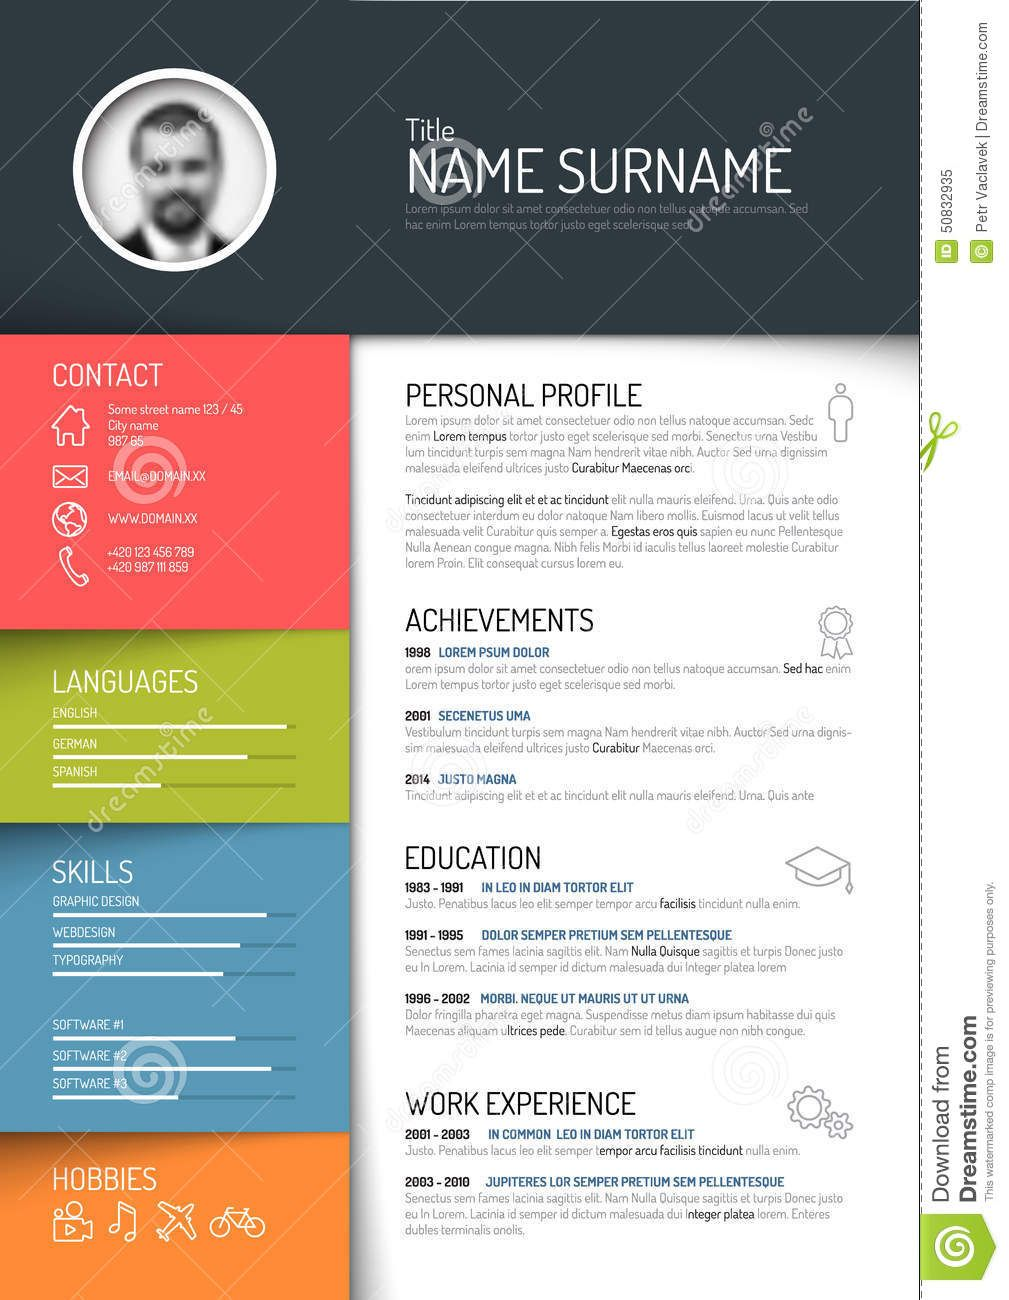 Cv / Resume Template Download From Over 62 Million High